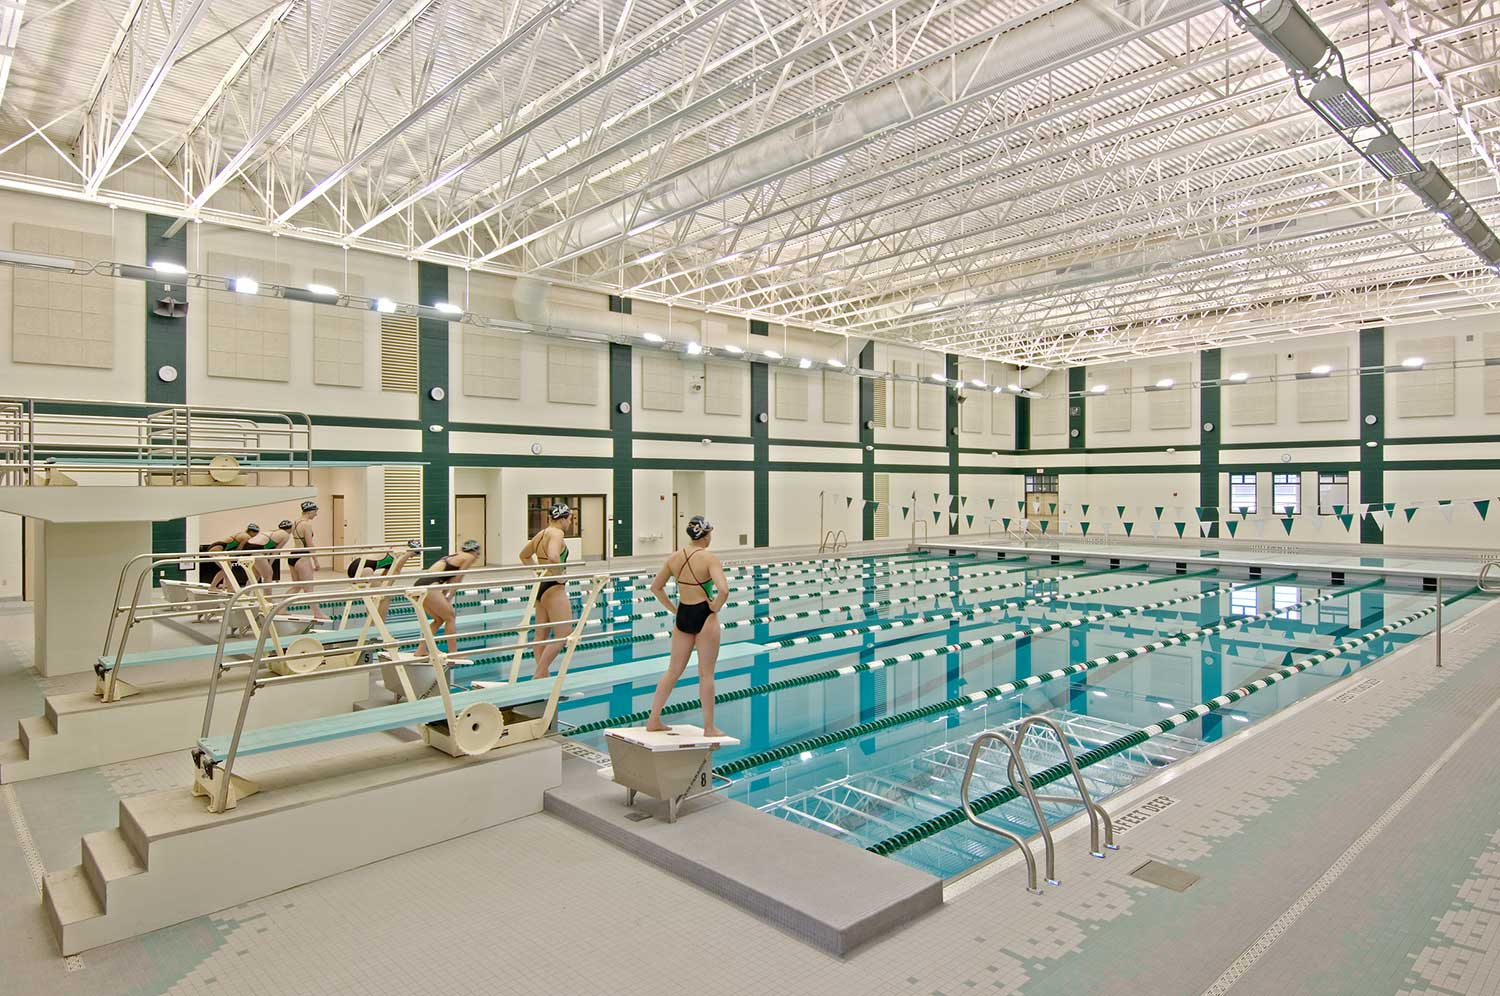 Shenendehowa csdaquatics center mosaic associates Clifton high school swimming pool